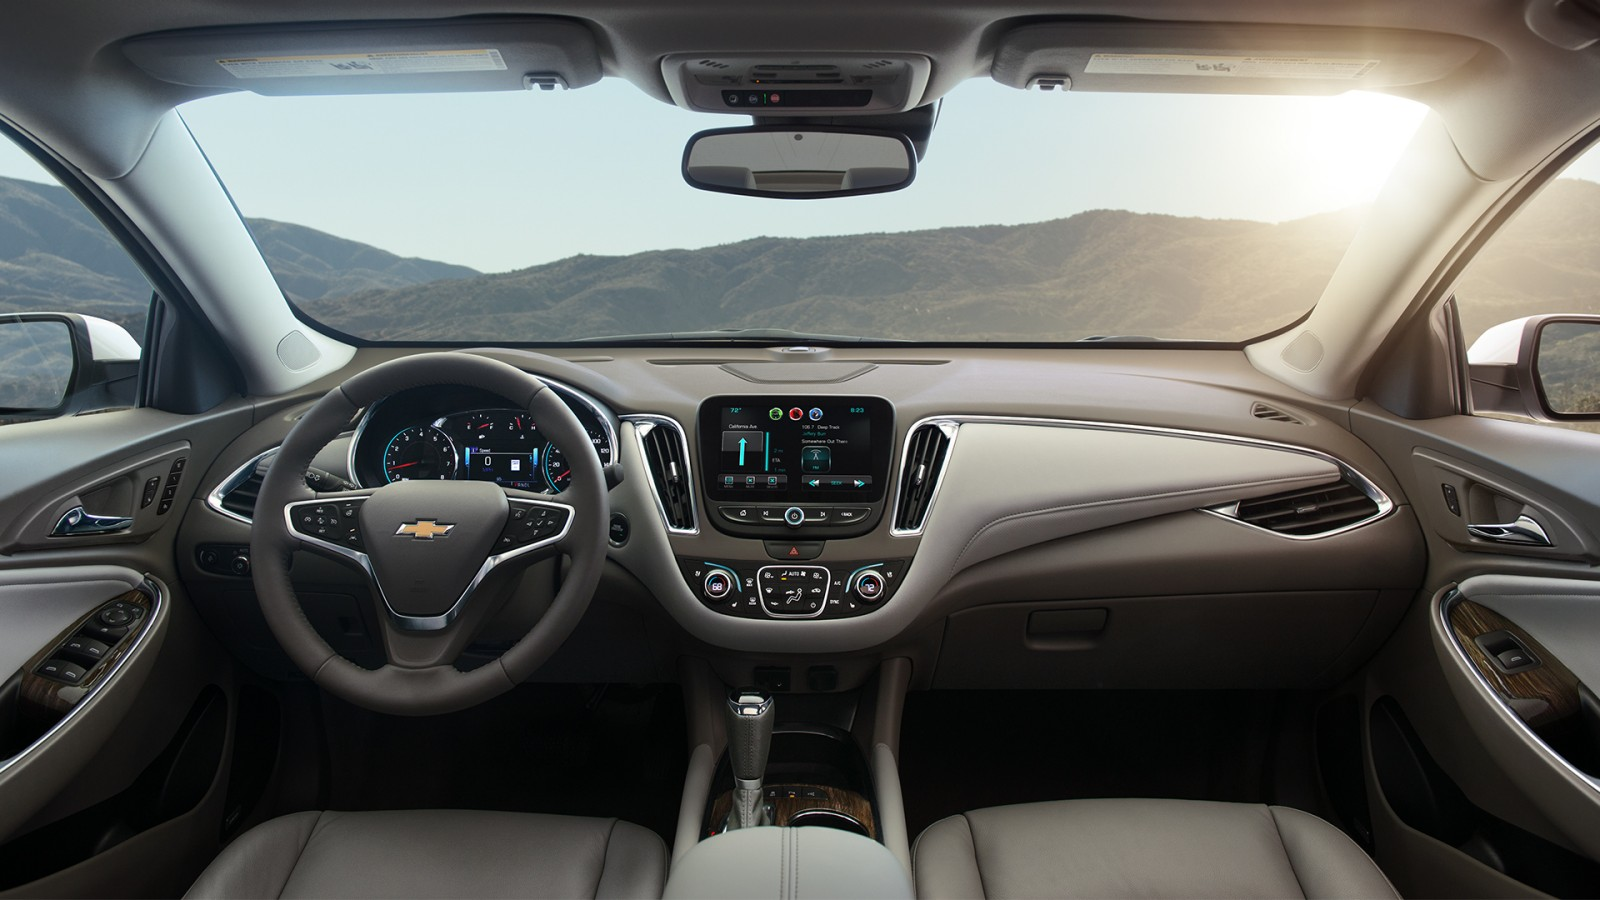 2017 Chevy Malibu Interior